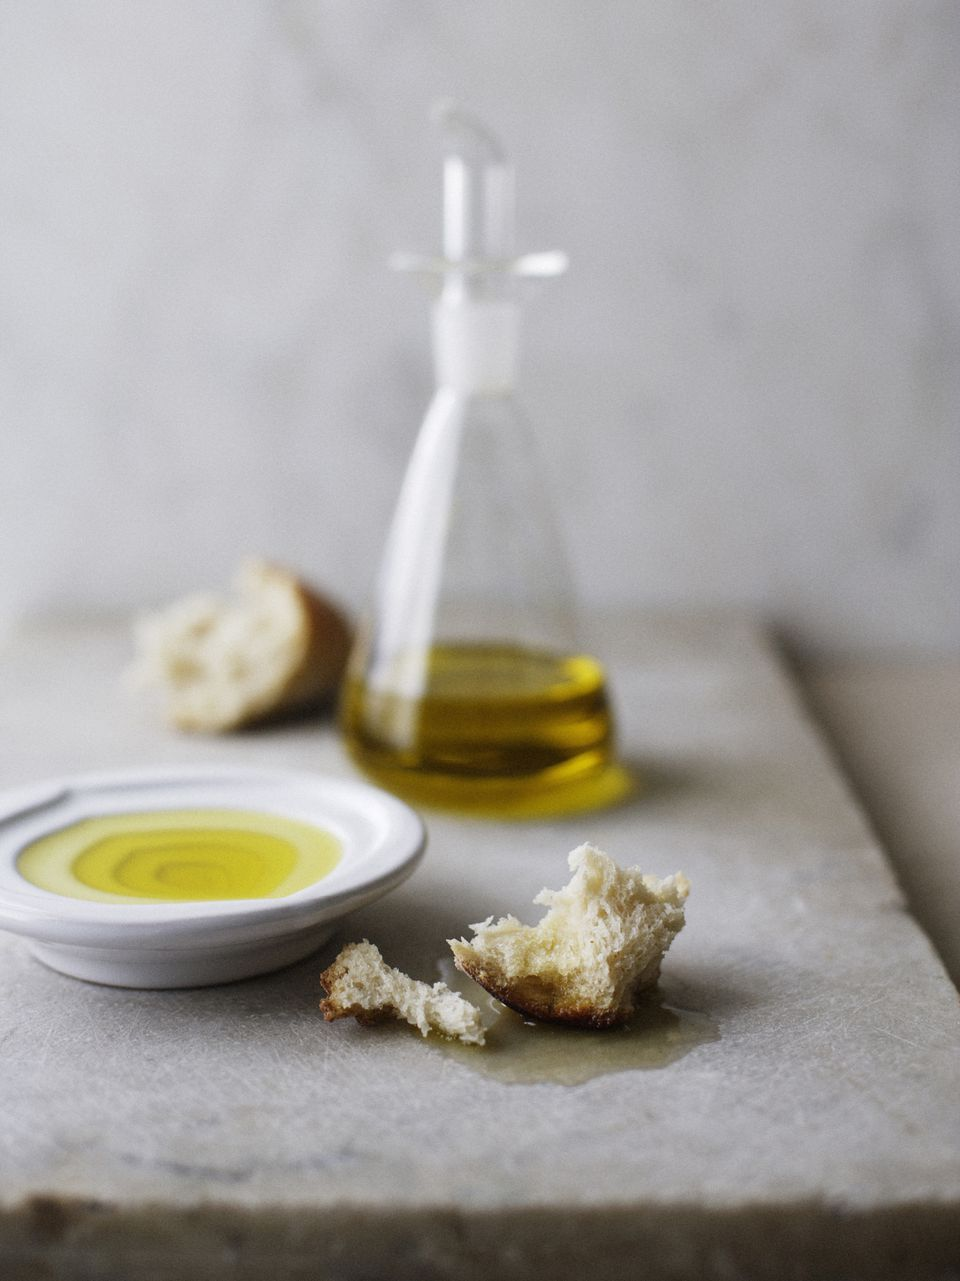 Plate of olive oil with crusty bread